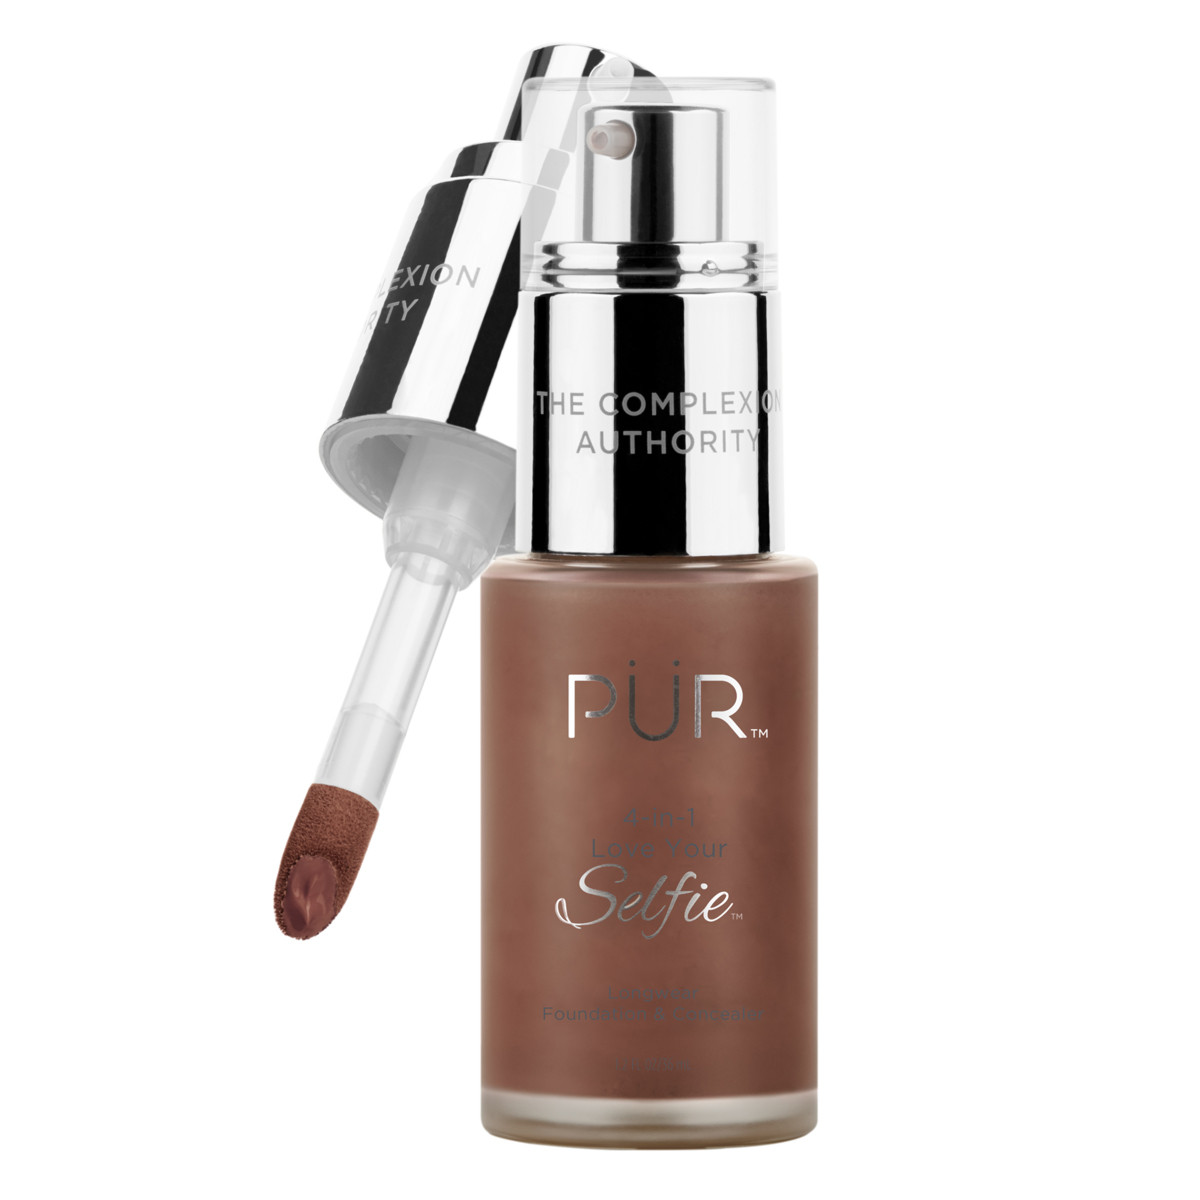 4-in-1 Love Your Selfie™ Longwear Foundation & Concealer in DPP1